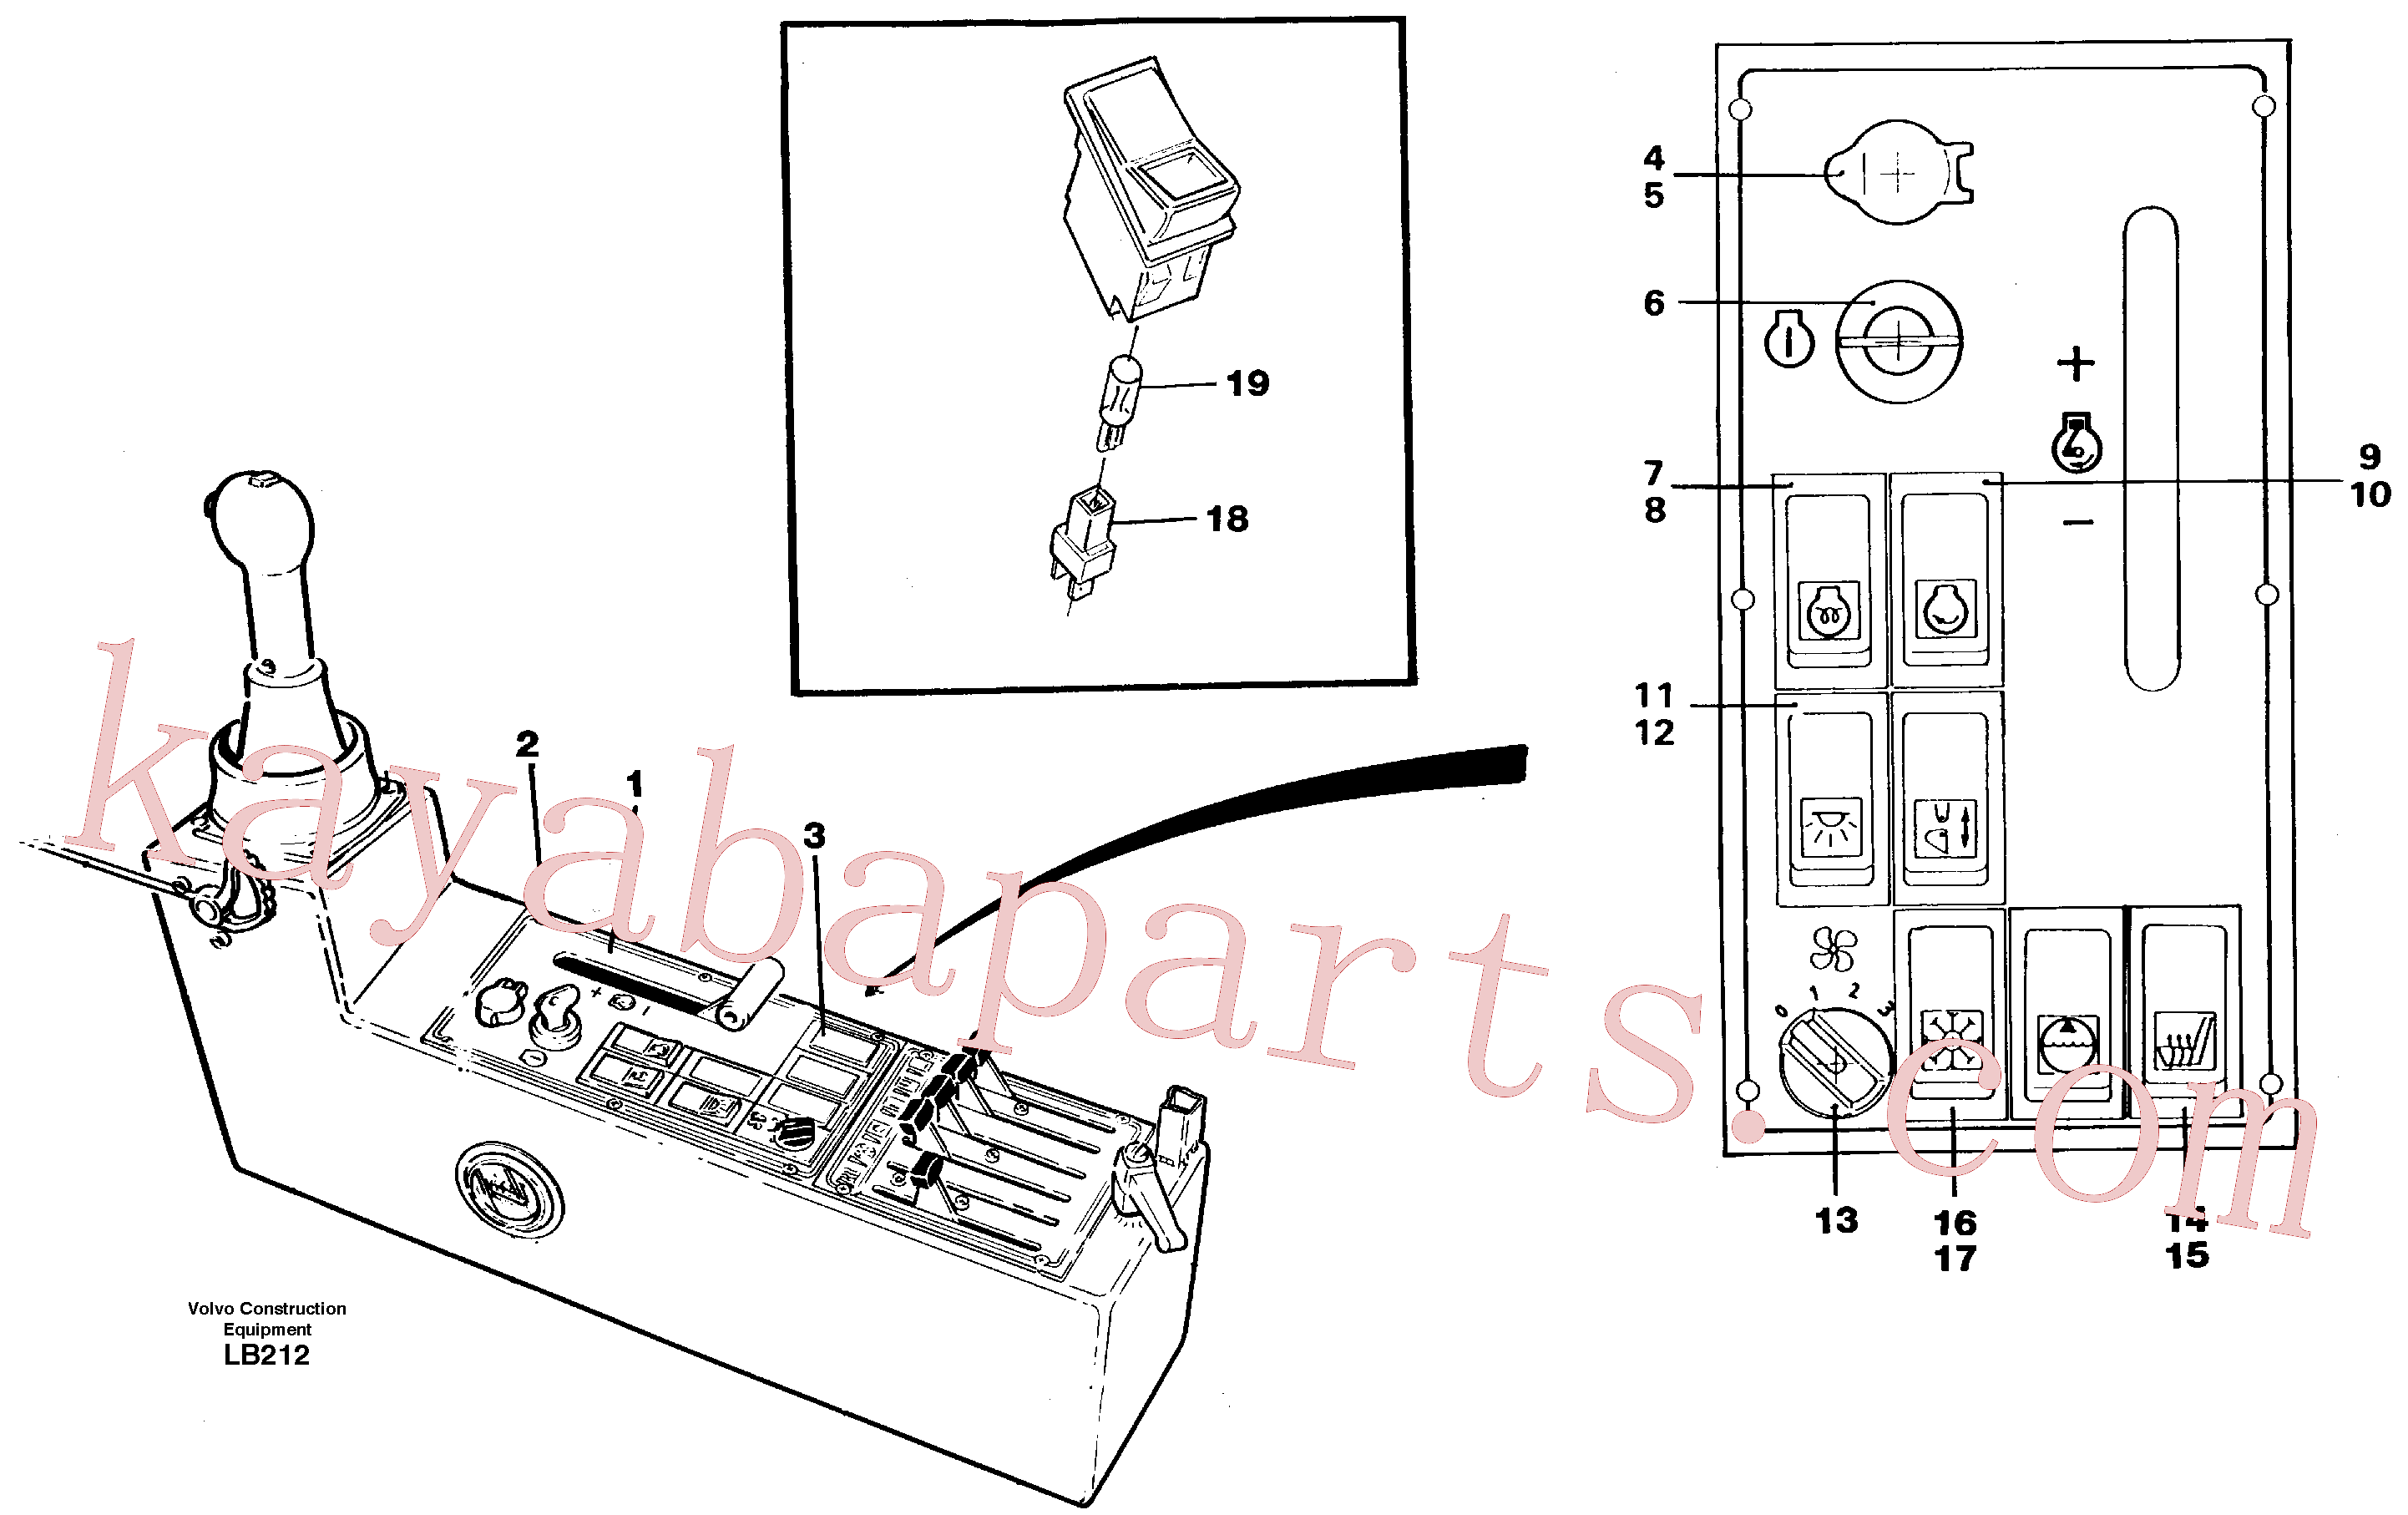 VOE11710777 for Volvo Engine control panel(LB212 assembly)